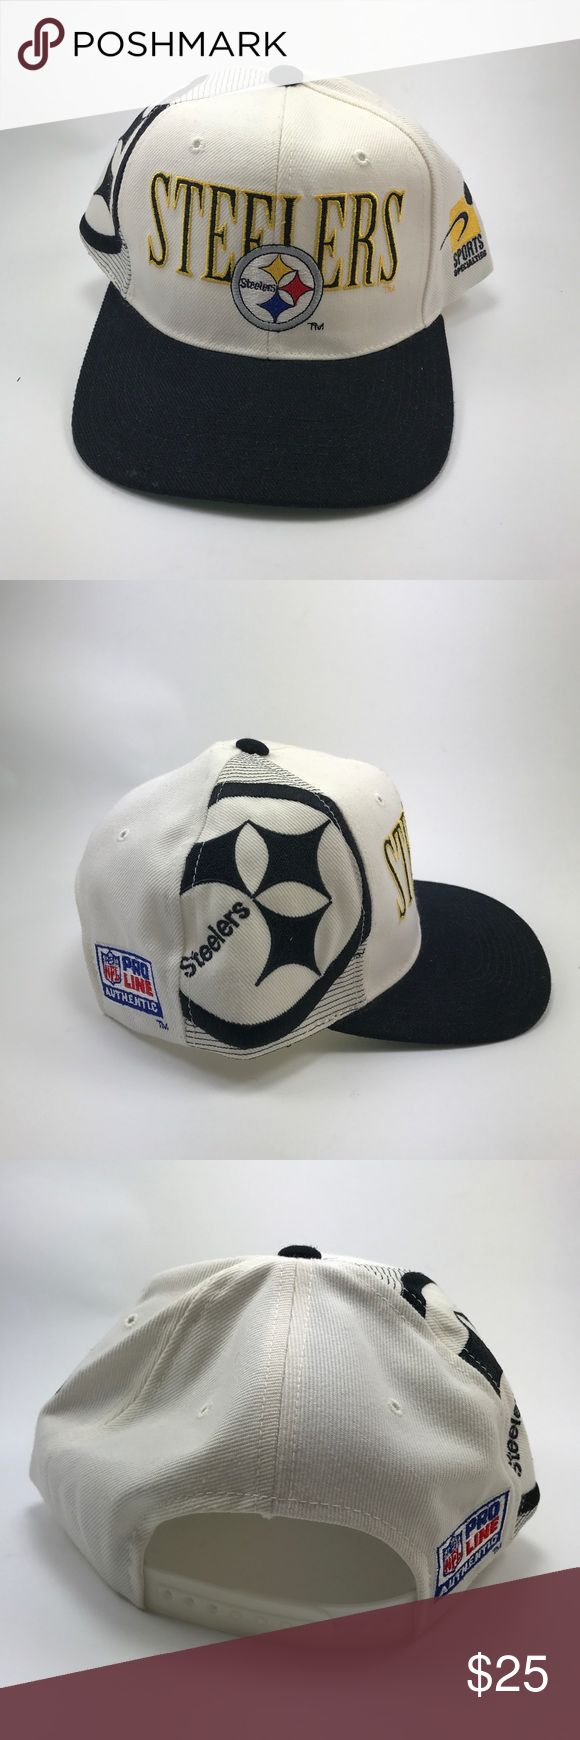 Pittsburgh Steelers Big Letter Snap Back Hat This is a very nice condition Steelers snap back hat. There are no stains, no fraying. No rips, and there are no sweat stains on the inner band. It is a wool blend hat. Please see pictures for better conditions. NFL Pro Line Accessories Hats